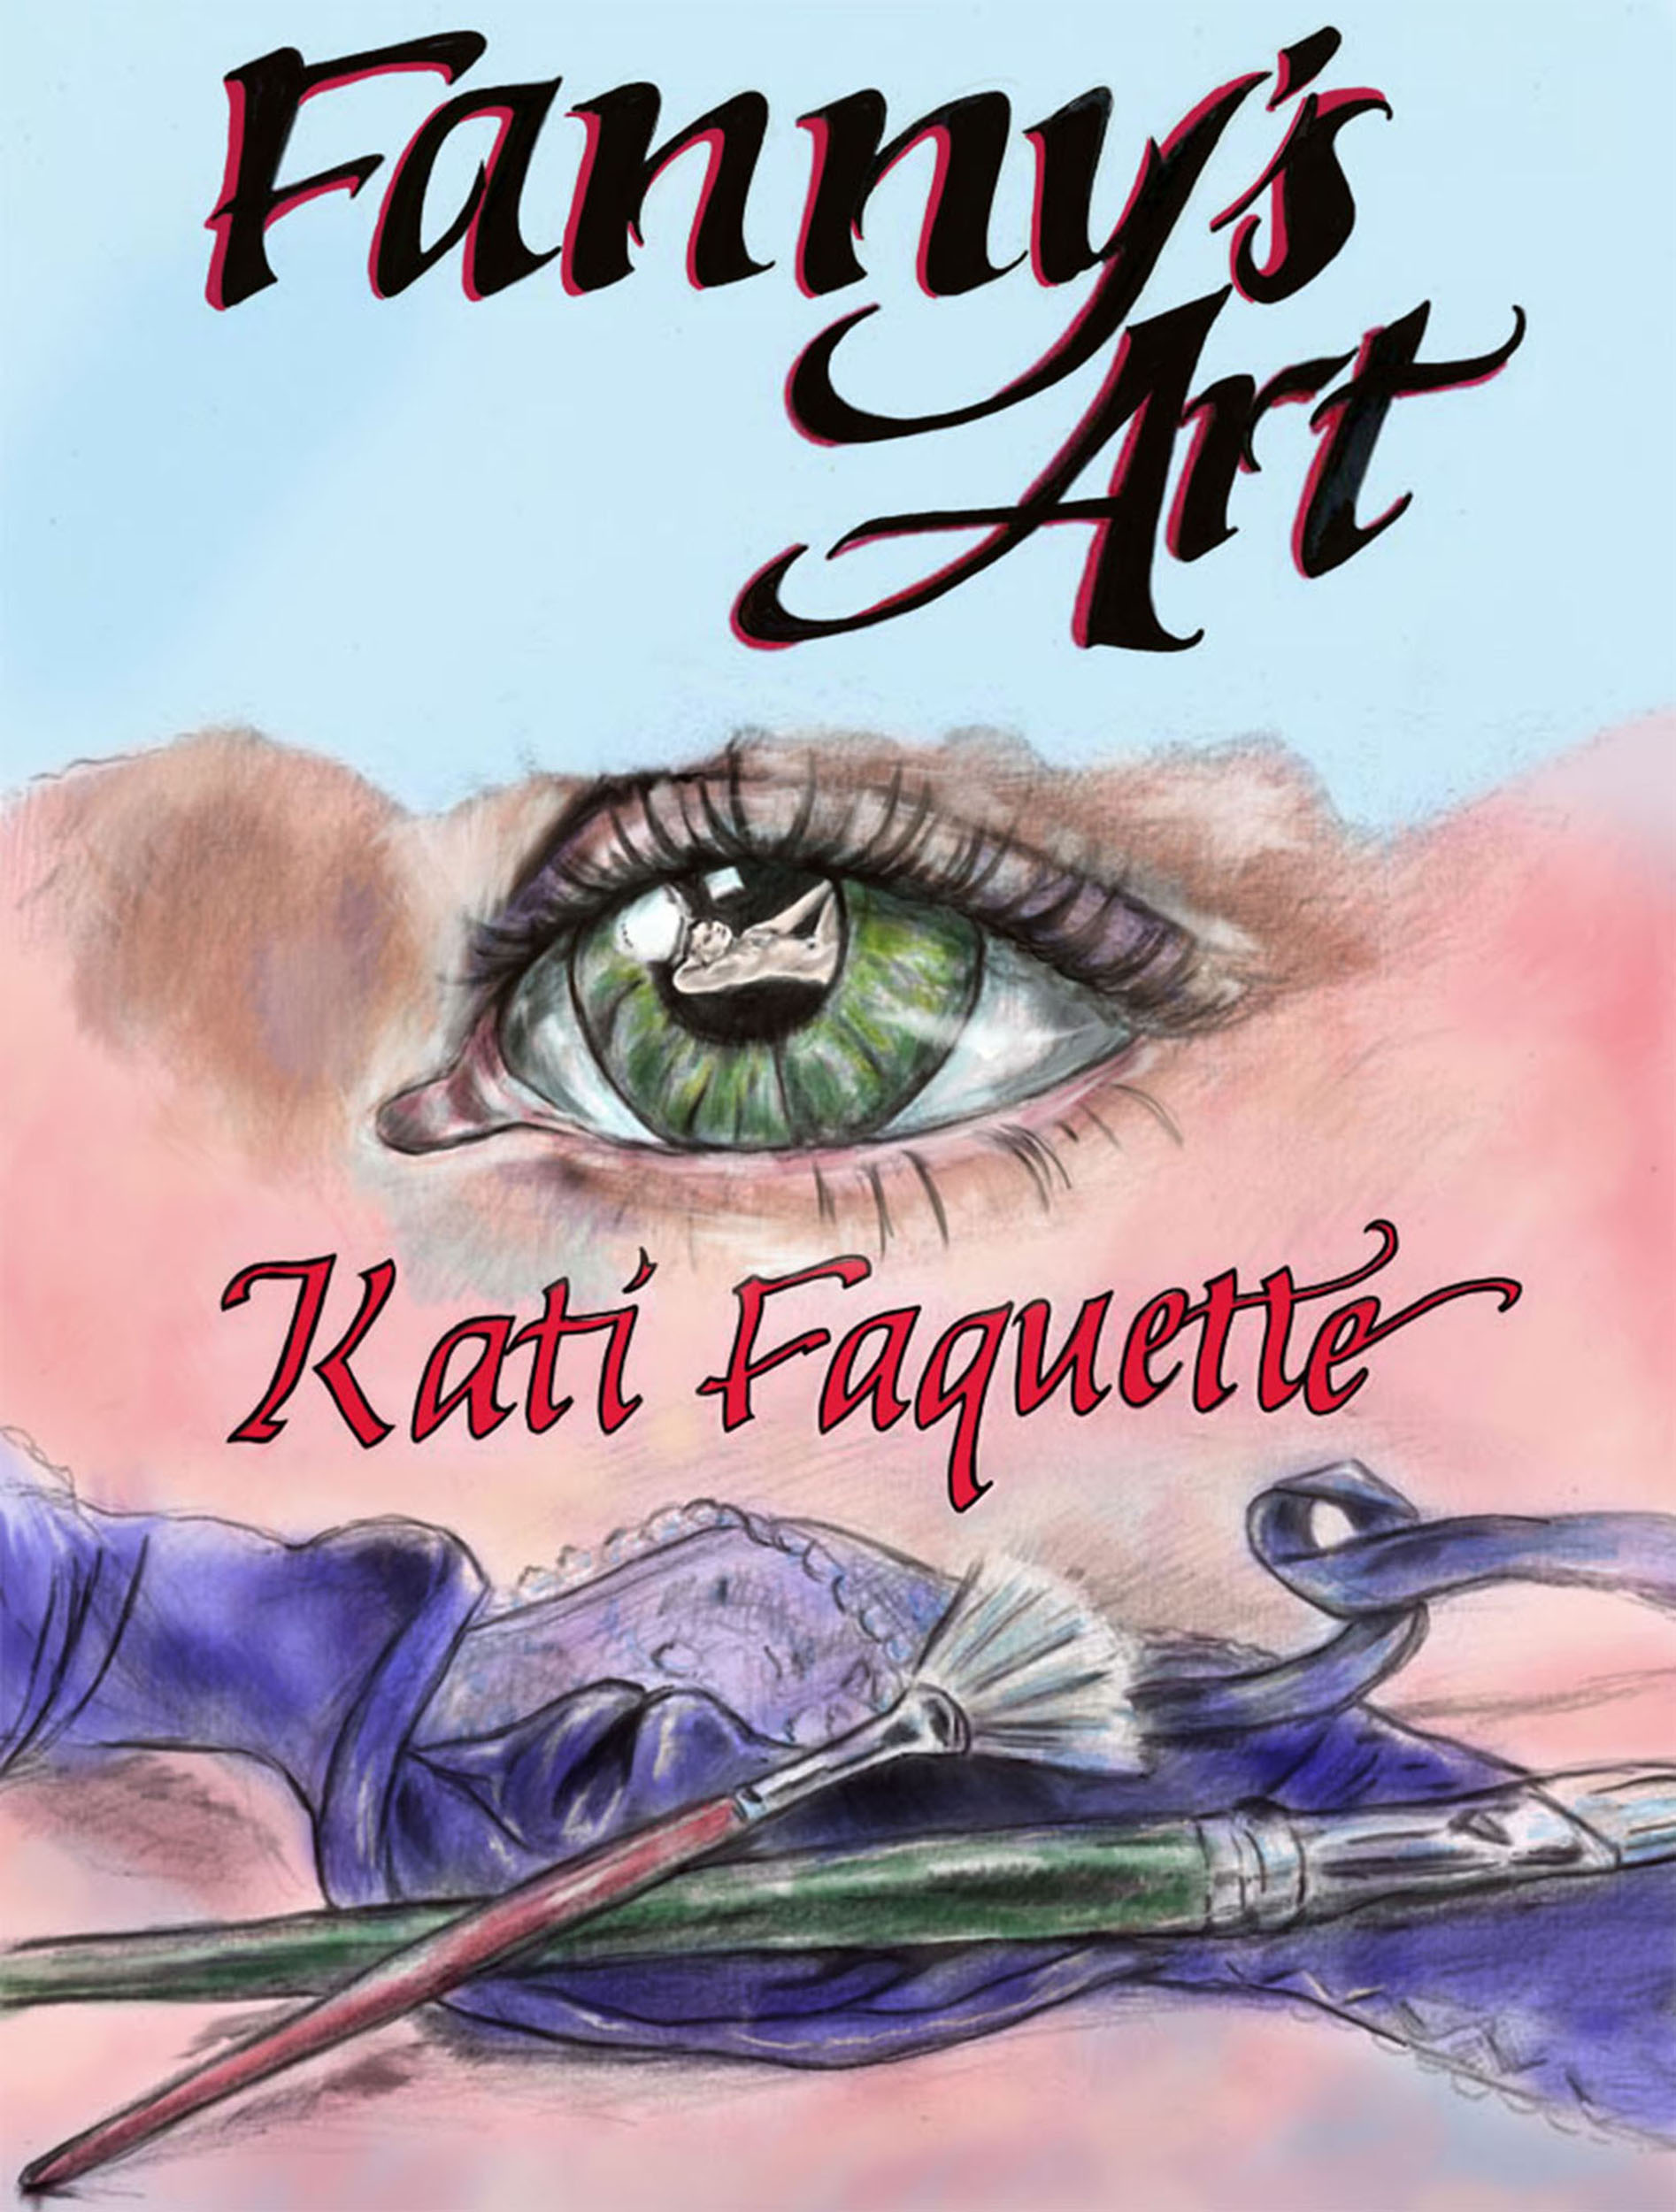 Book Cover: Fanny's Art, Kati Faquette, 2013 ADULT CONTENT